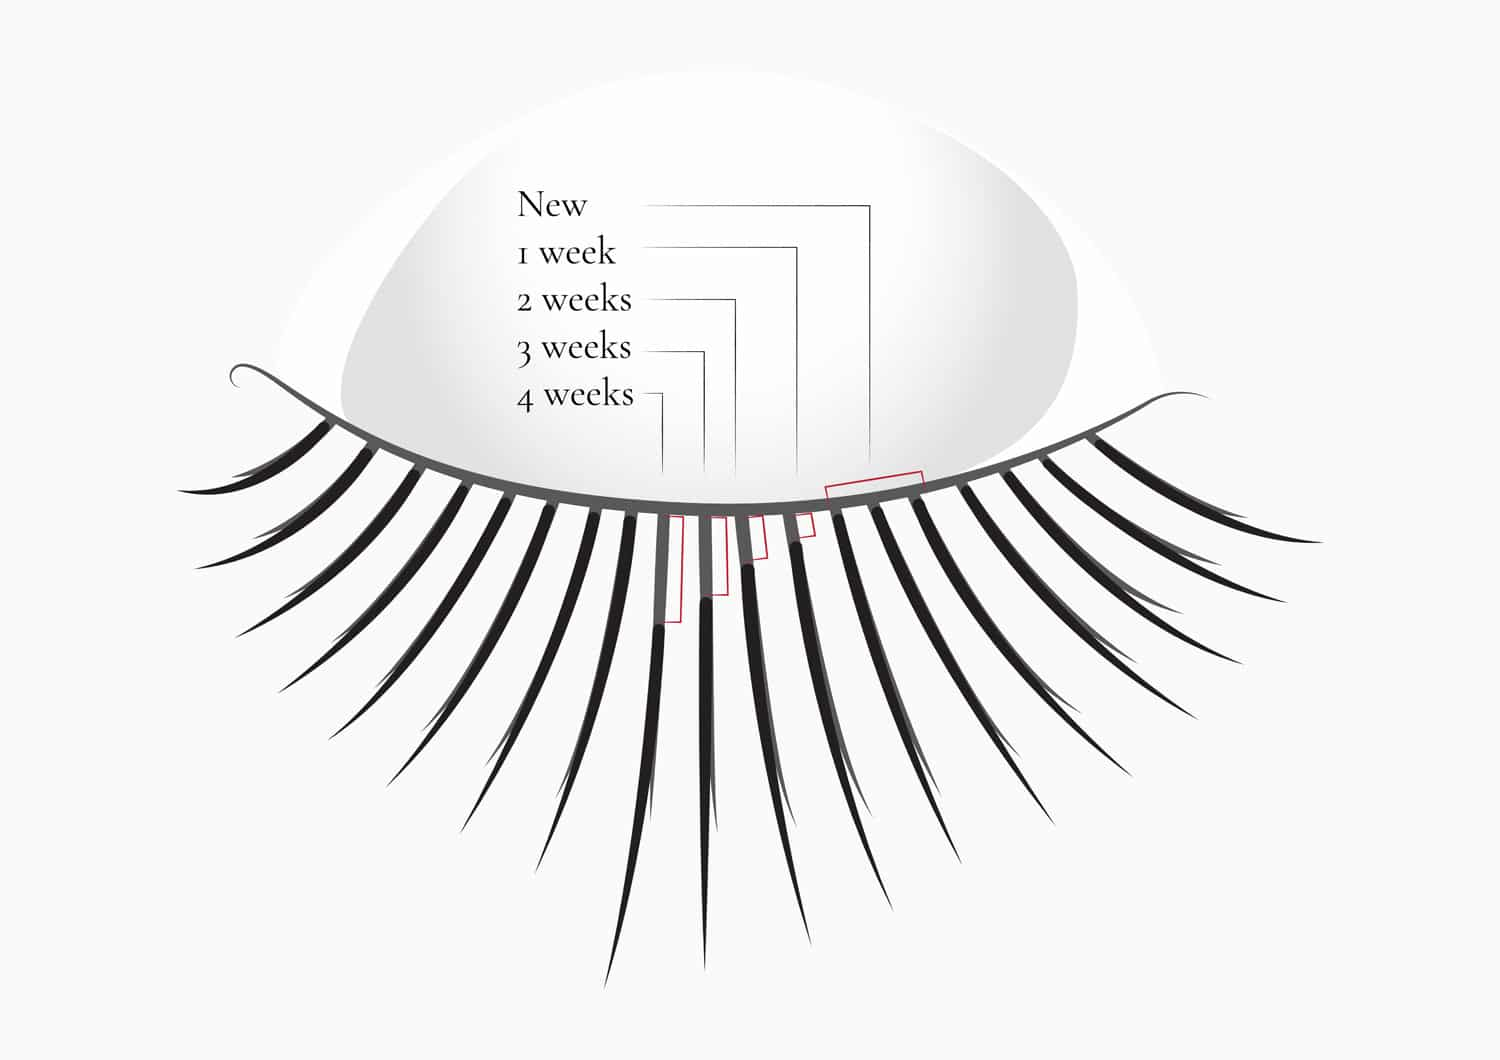 Accurate explanation on how long do eyelash extensions last for. Lashes life span.